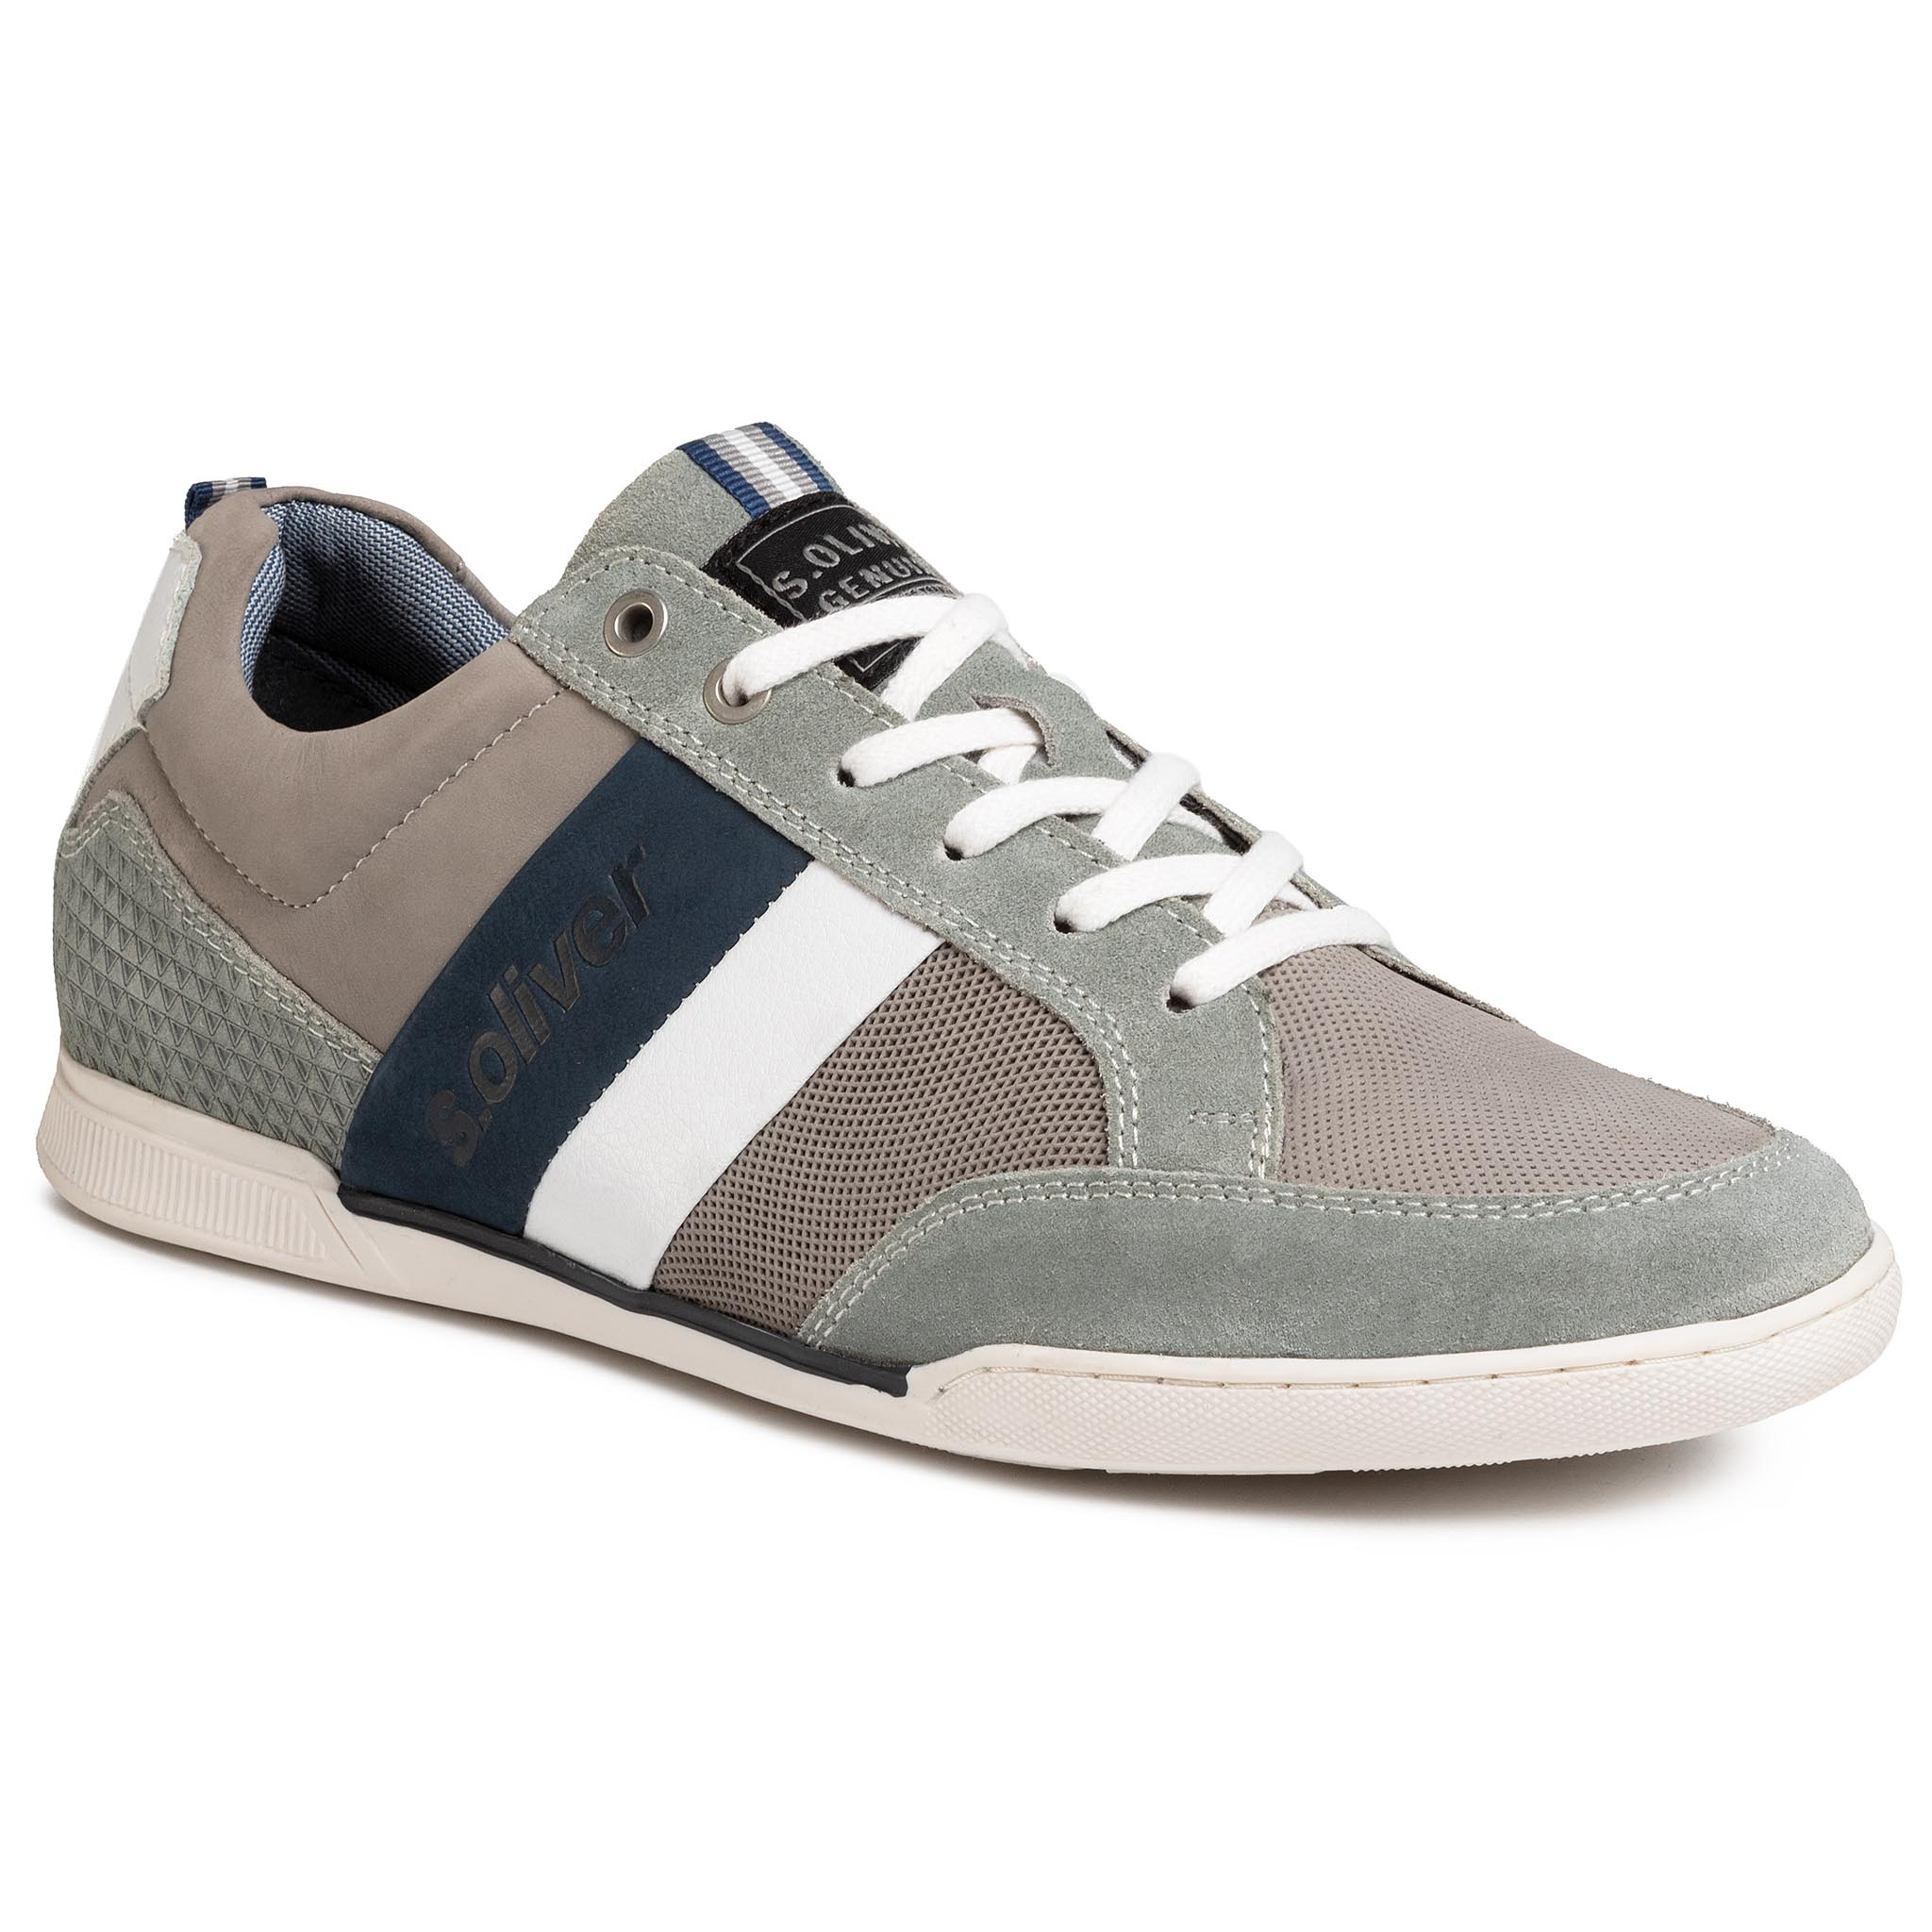 Sneakers S.OLIVER - 5-13619-24 Grey 200